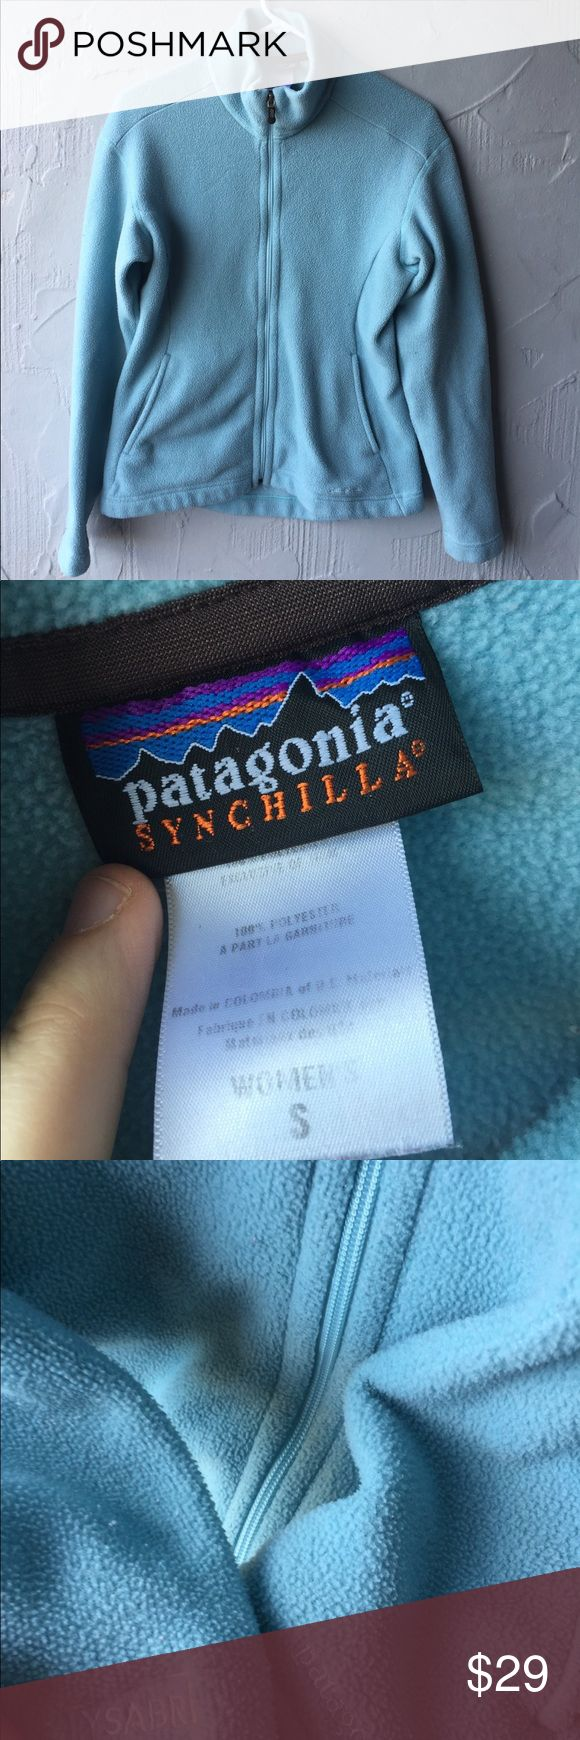 Patagonia light blue zip up jacket size small Women's light blue (almost turquoise) full zip up jacket. Features two pockets. Size small.  In the style synchilla  (synthetic chinchilla) . Worn but still has tons of life left. Has no flaws. Smoke free home Patagonia Tops Sweatshirts & Hoodies